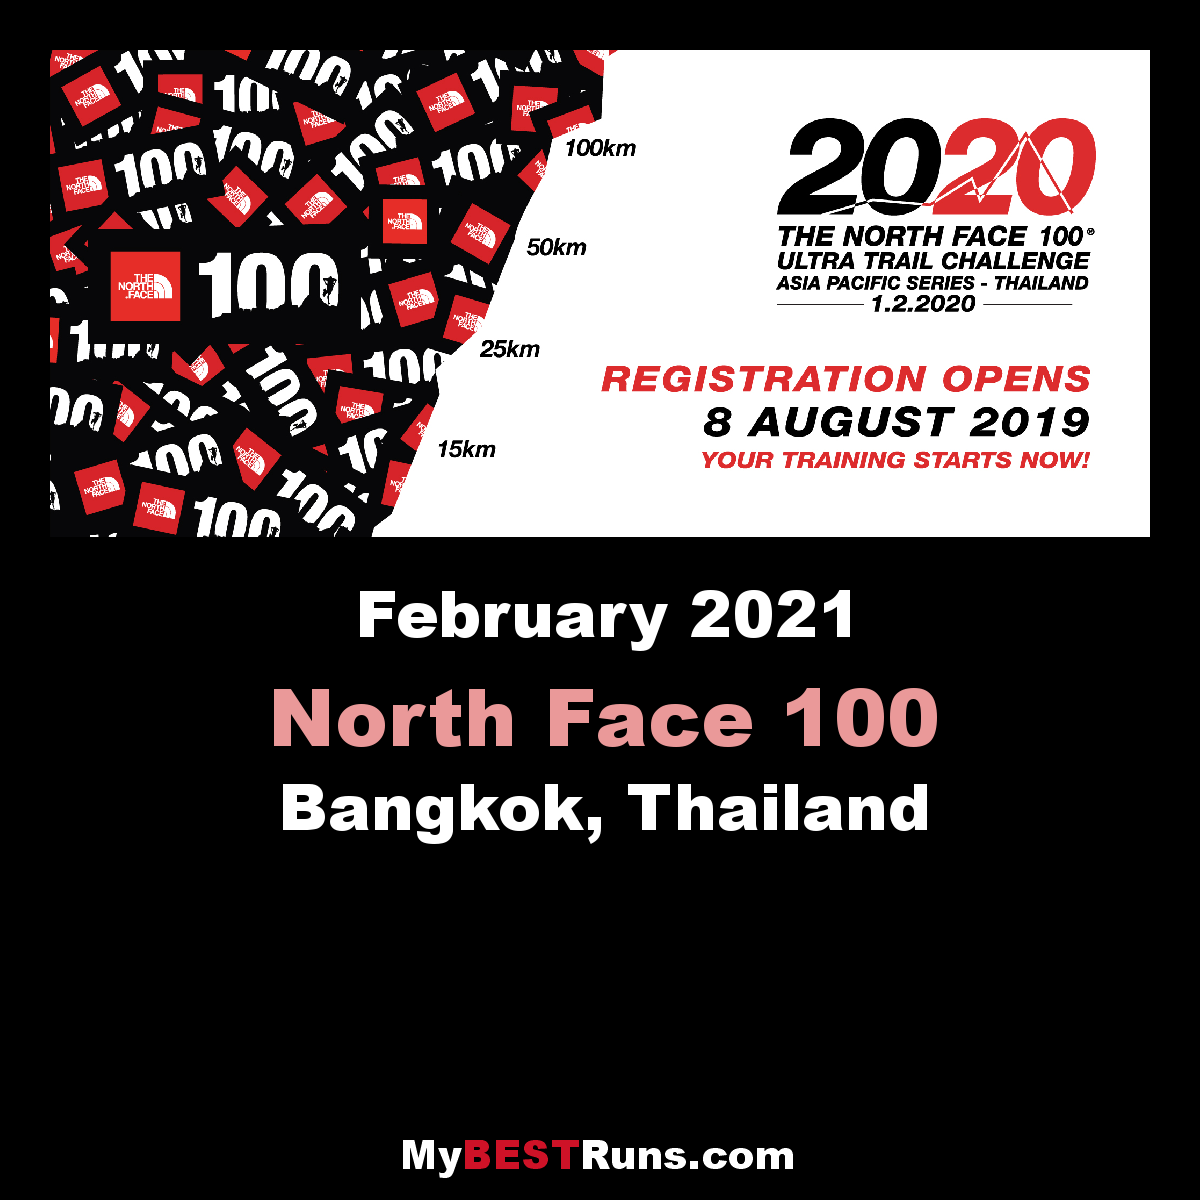 The North Face 100 Thailand